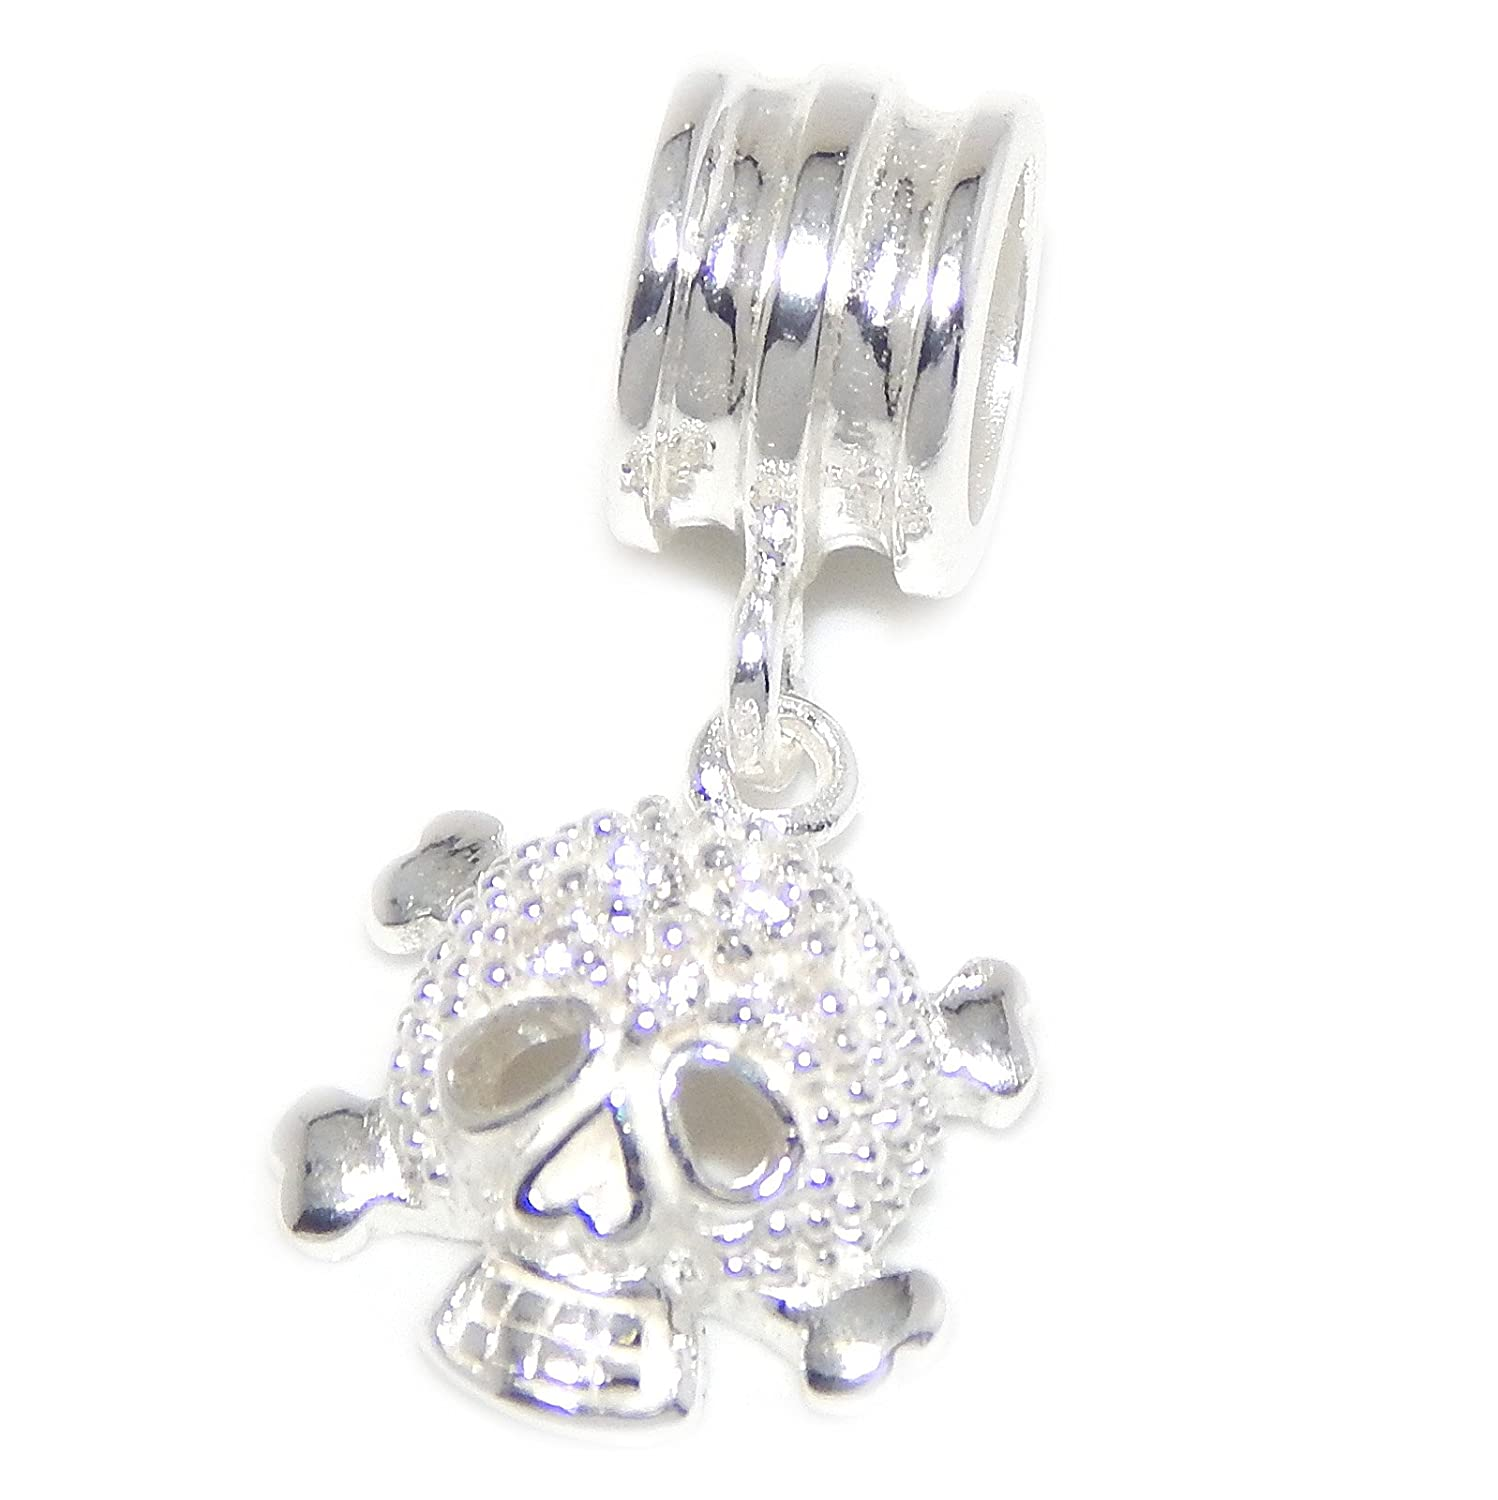 ICYROSE Solid 925 Sterling Silver Dangling Skull and Crossbones with Clear CZ Charm Bead